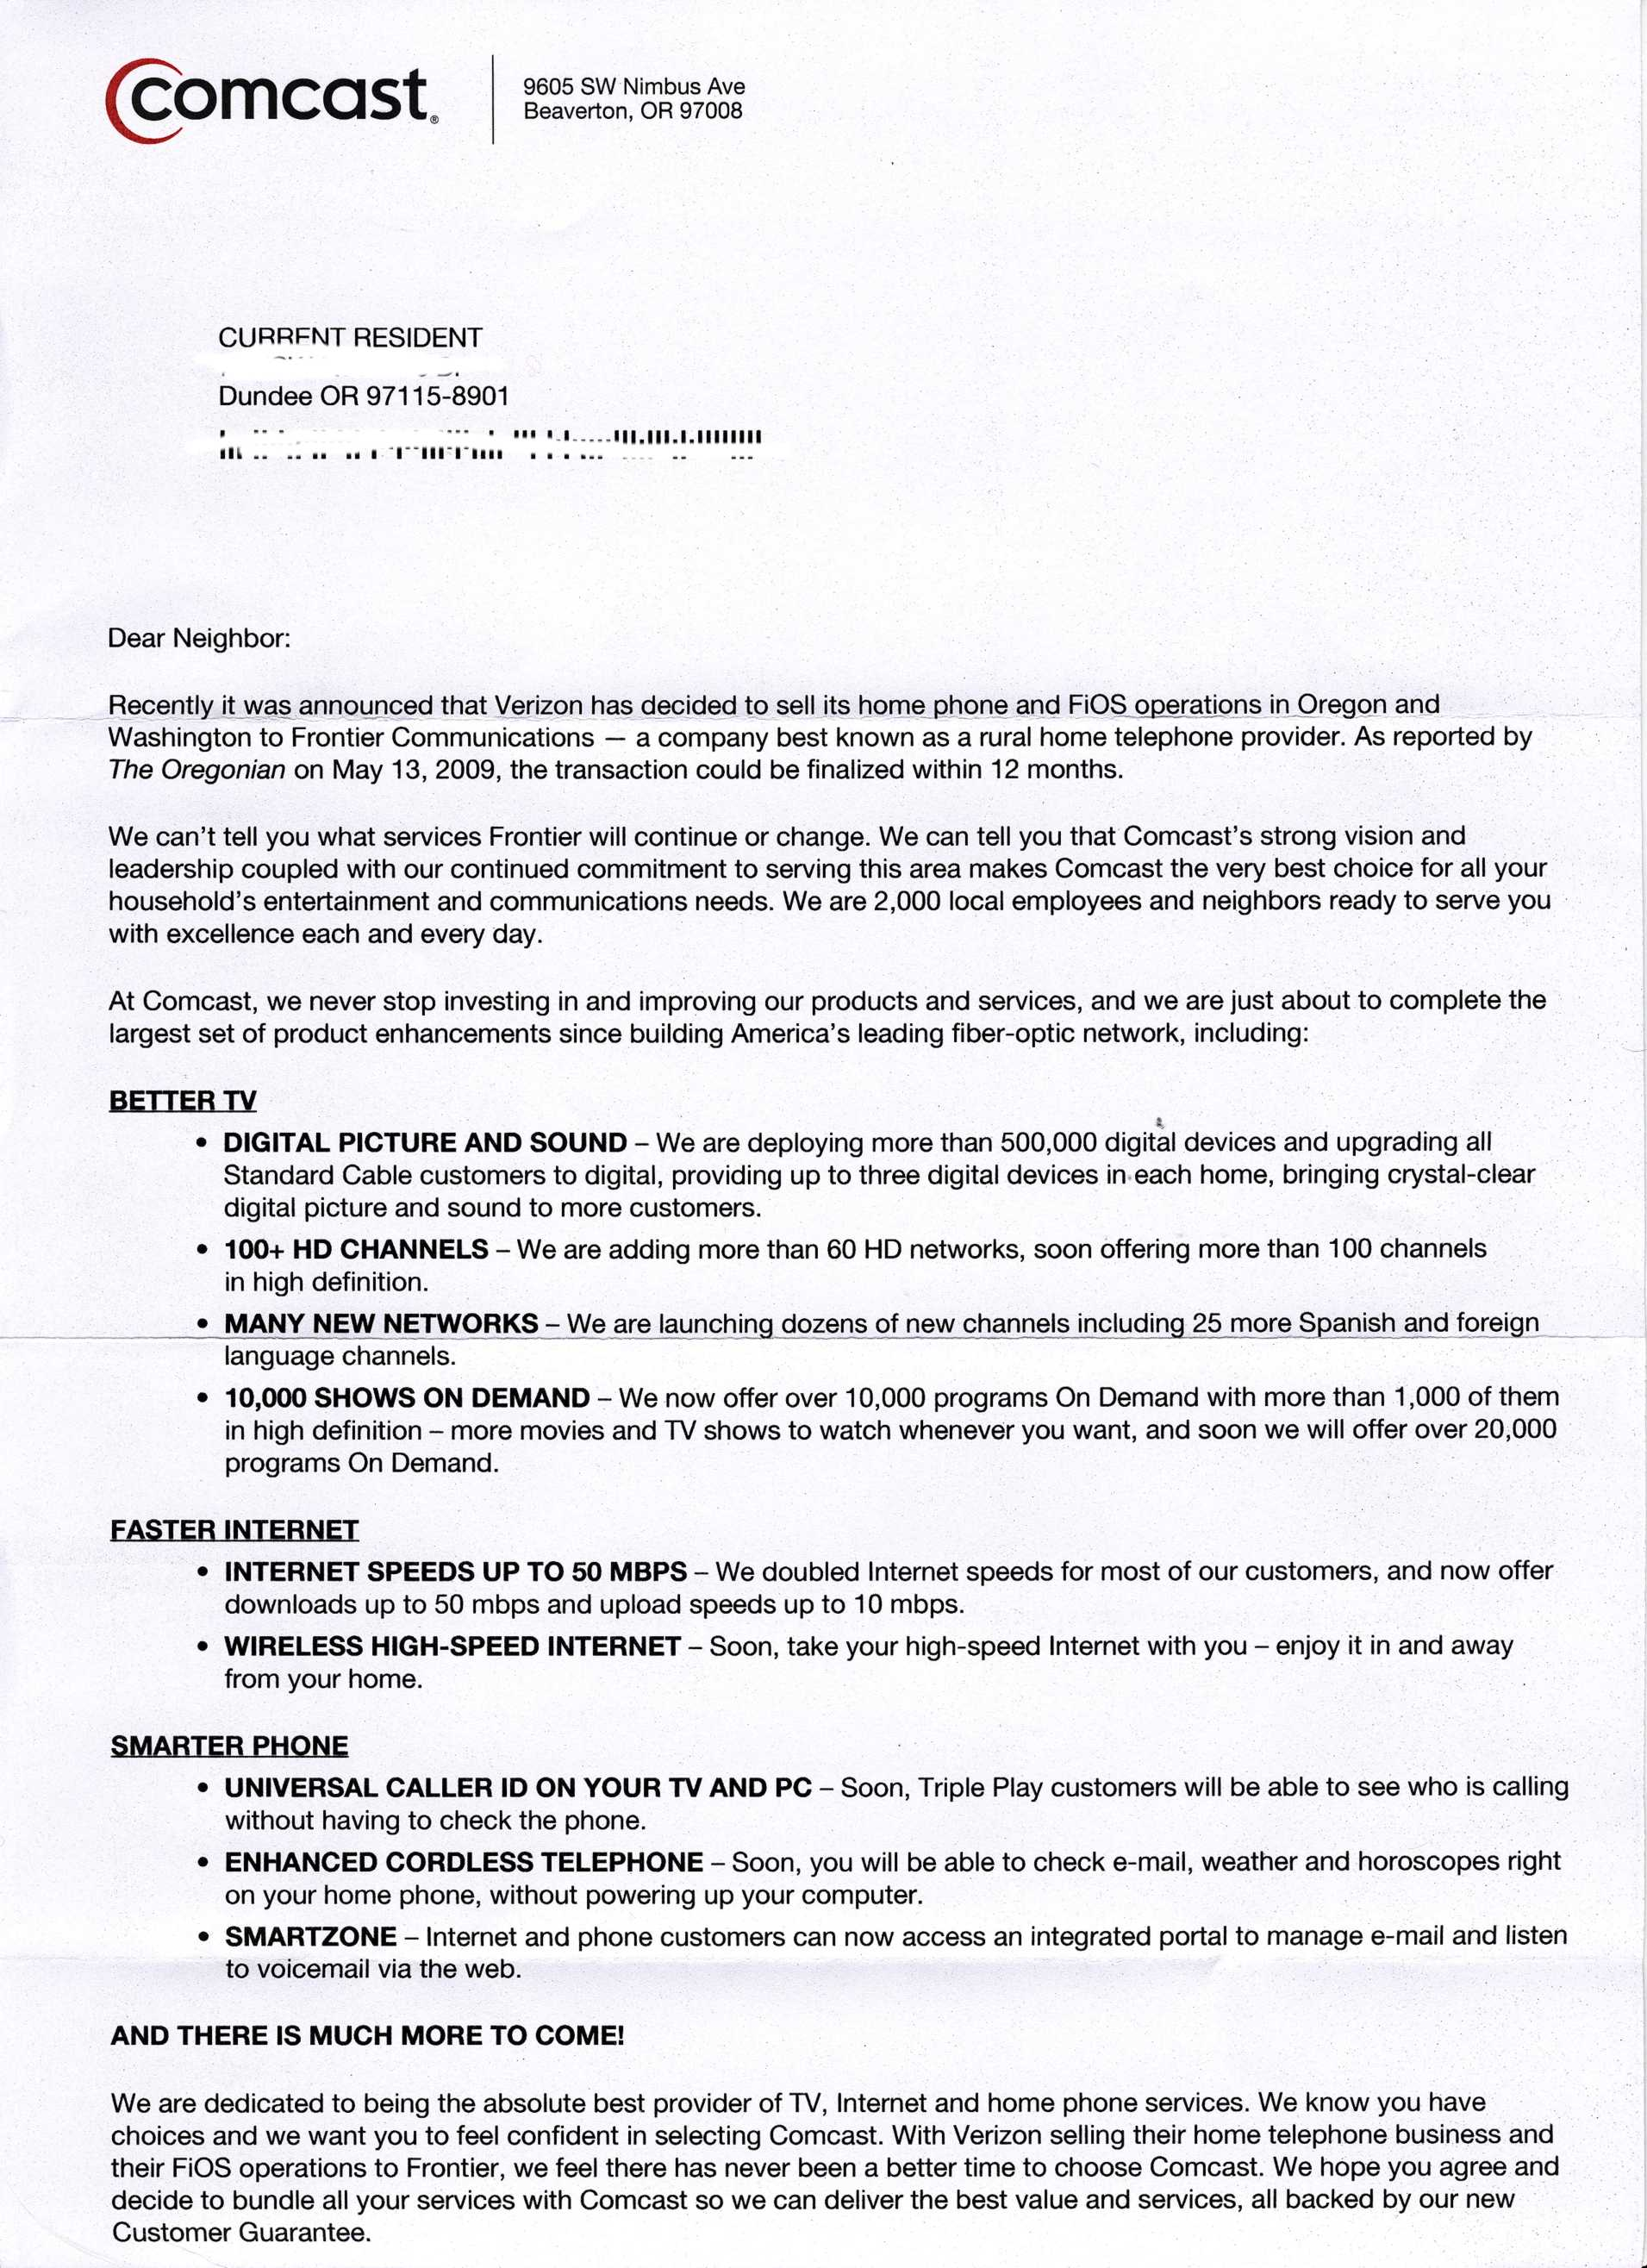 comcast cover letter